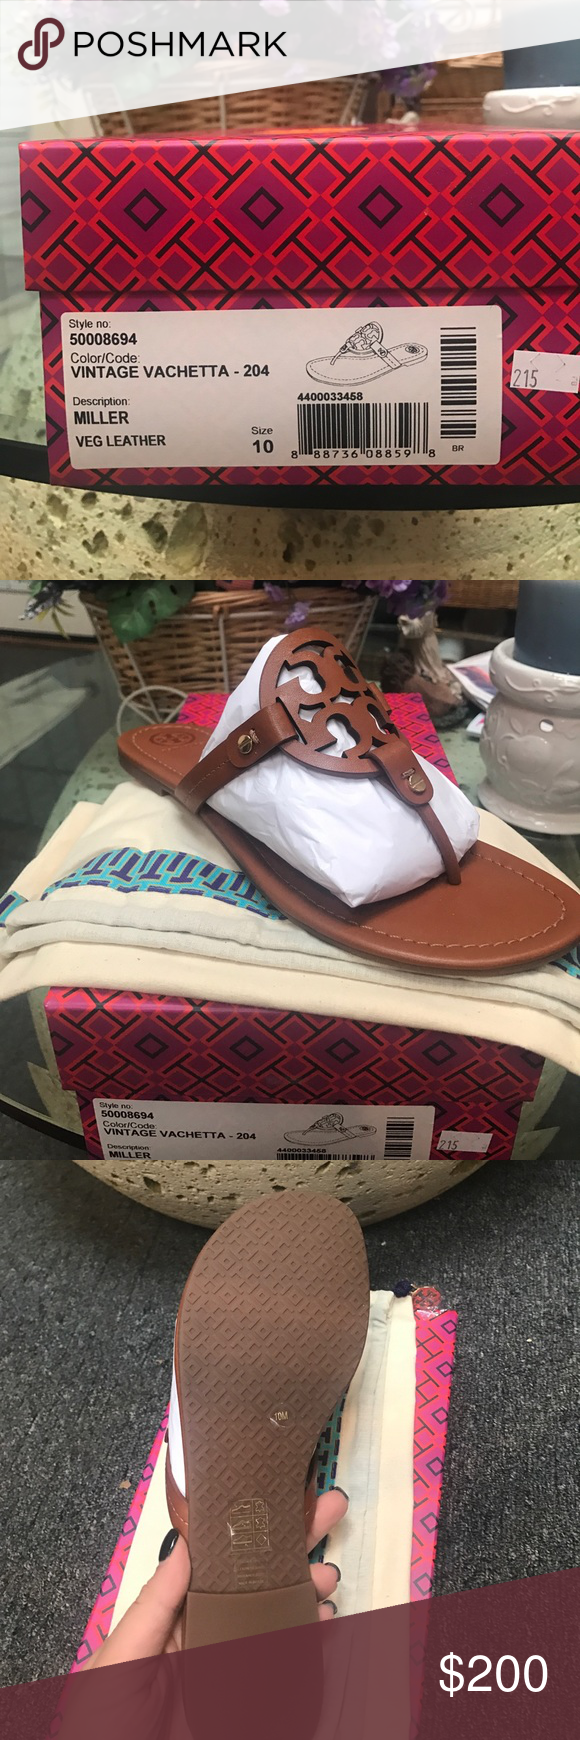 ffb6cdad8 1 pair size Brand new in box authentic! Search on vinted they are listed!  First come first serve Tory Burch Shoes Sandals